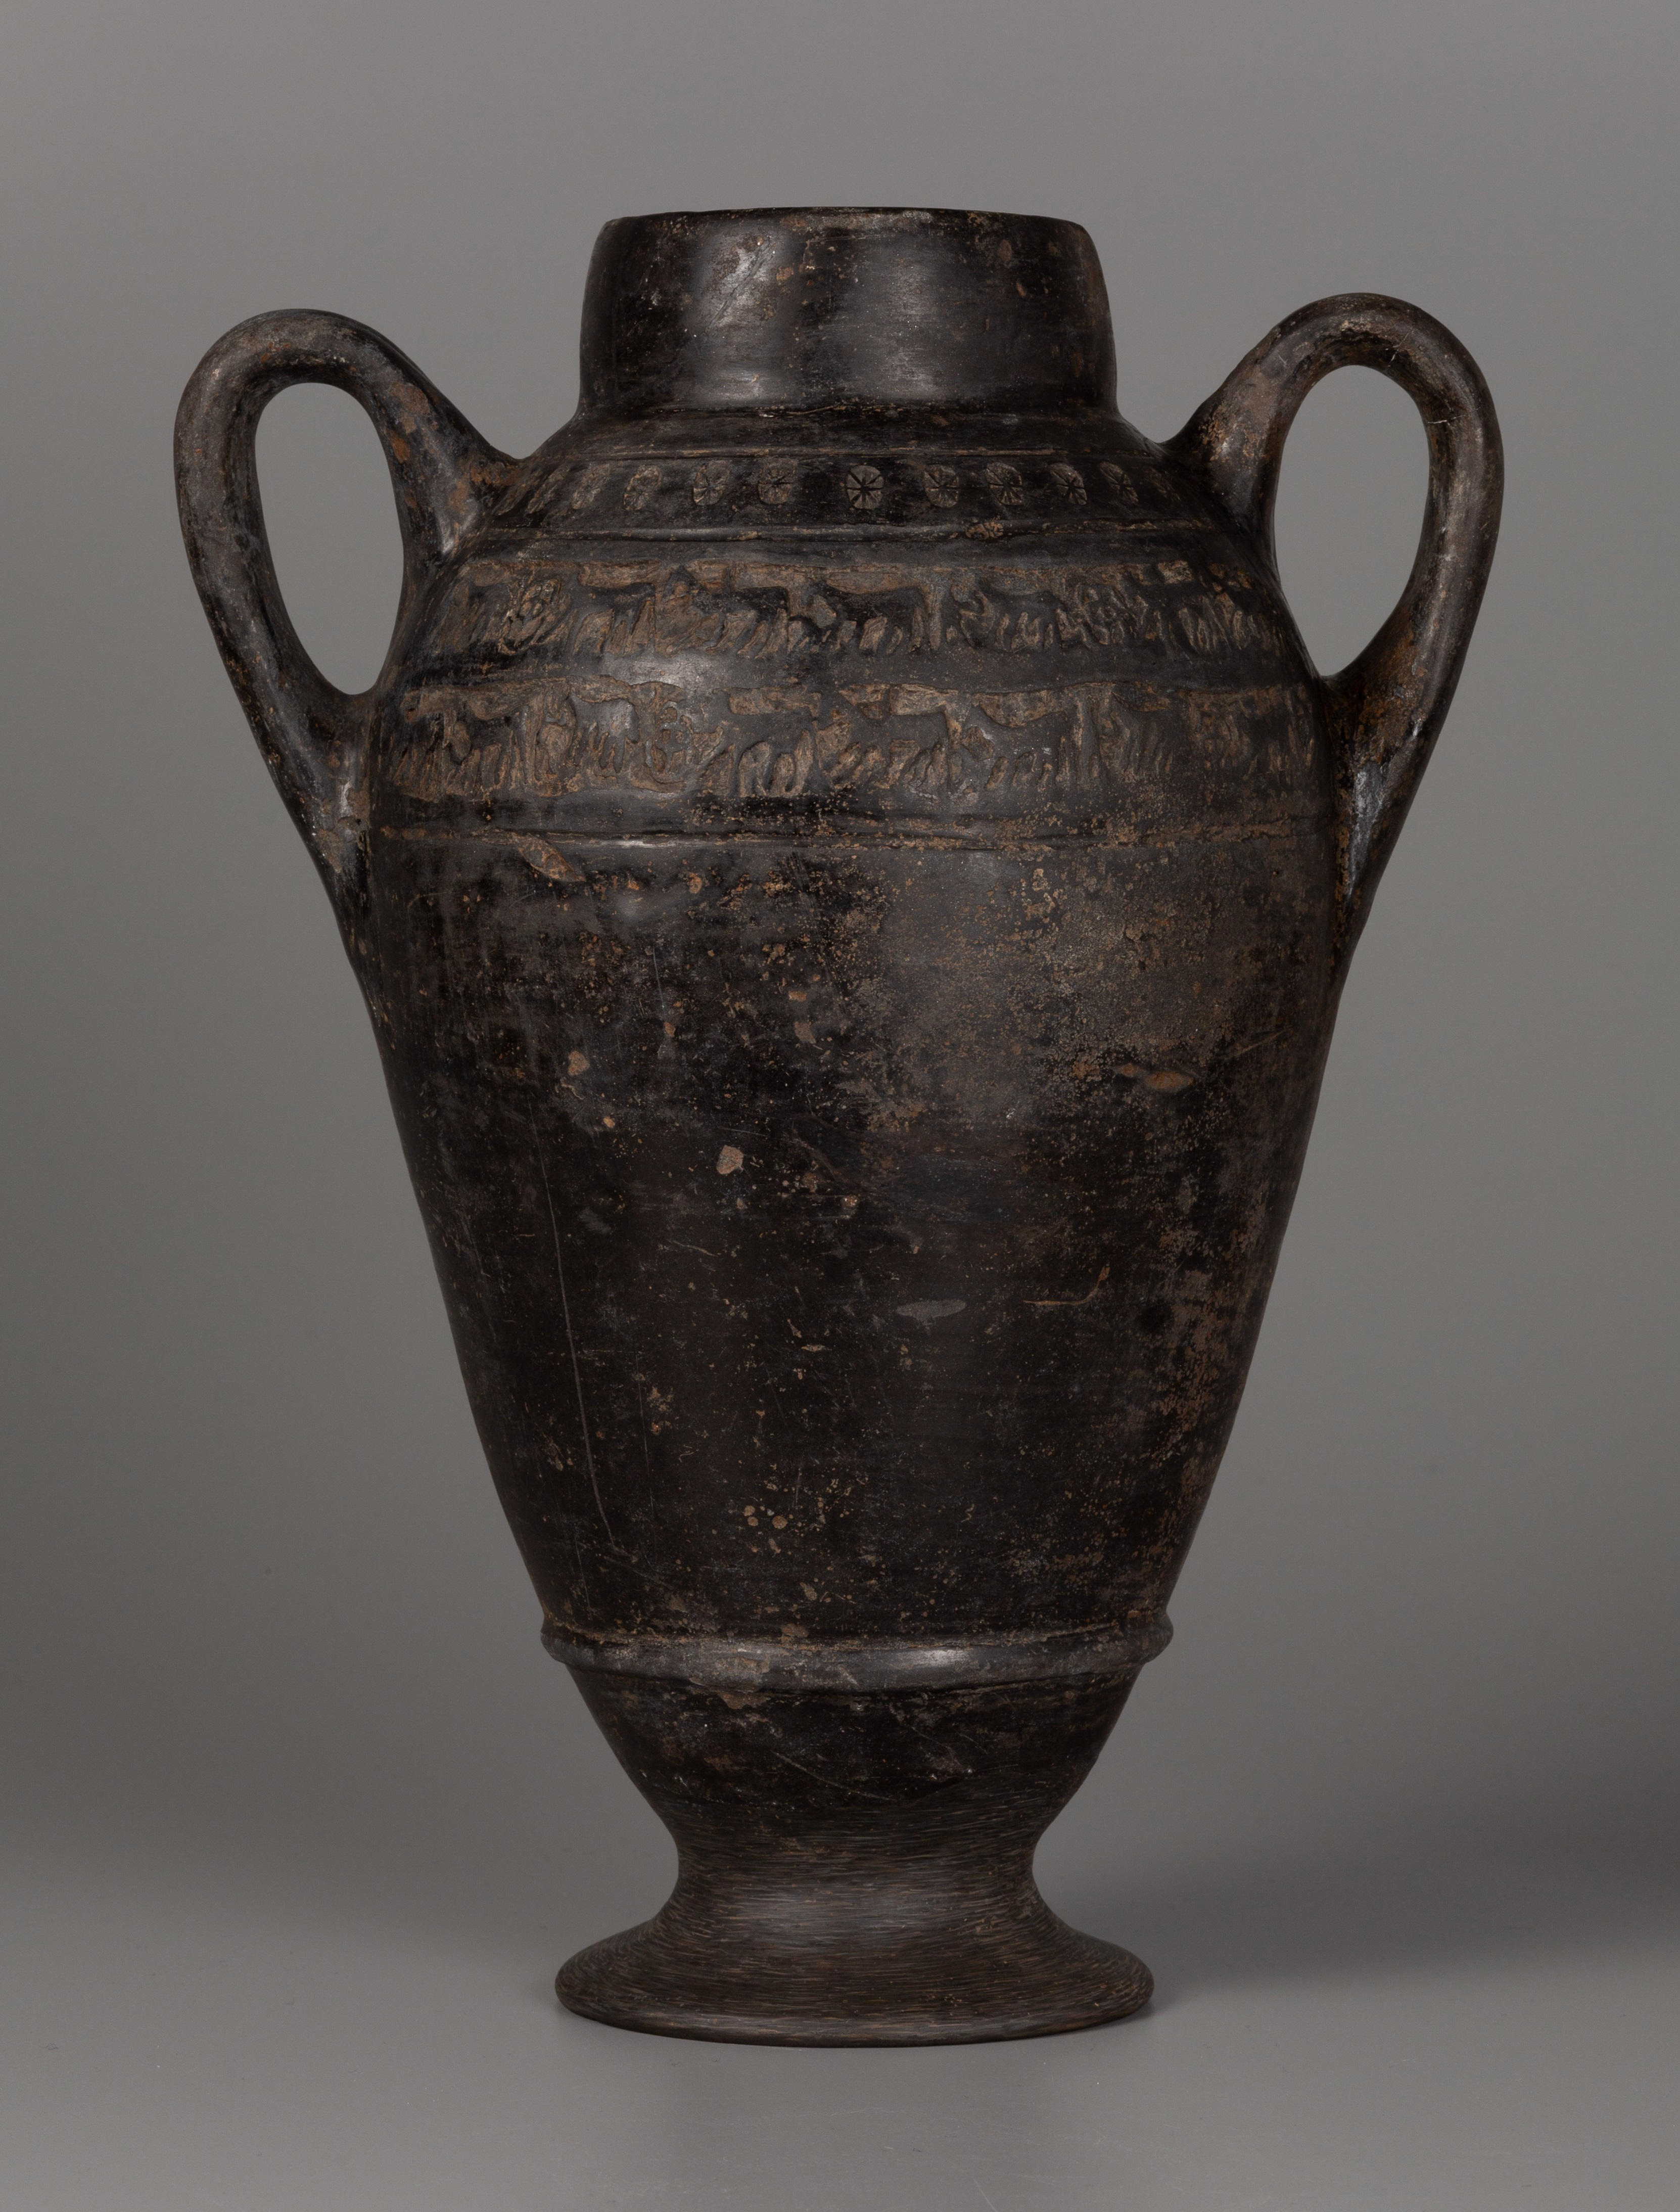 This photograph shows an amphora with a short cylindrical neck and two upward-curving handles attached at the shoulder. The body of the vessel tapers toward a flared foot. A raised ring encircles the body just above the foot. The shoulder zone displays impressed decoration: indvidual star patterns or rosettes above, and below two bands with figures of horses and riders. The surface of the amphora is nearly black and shiny; the base of the vessel has a slightly different surface finish.